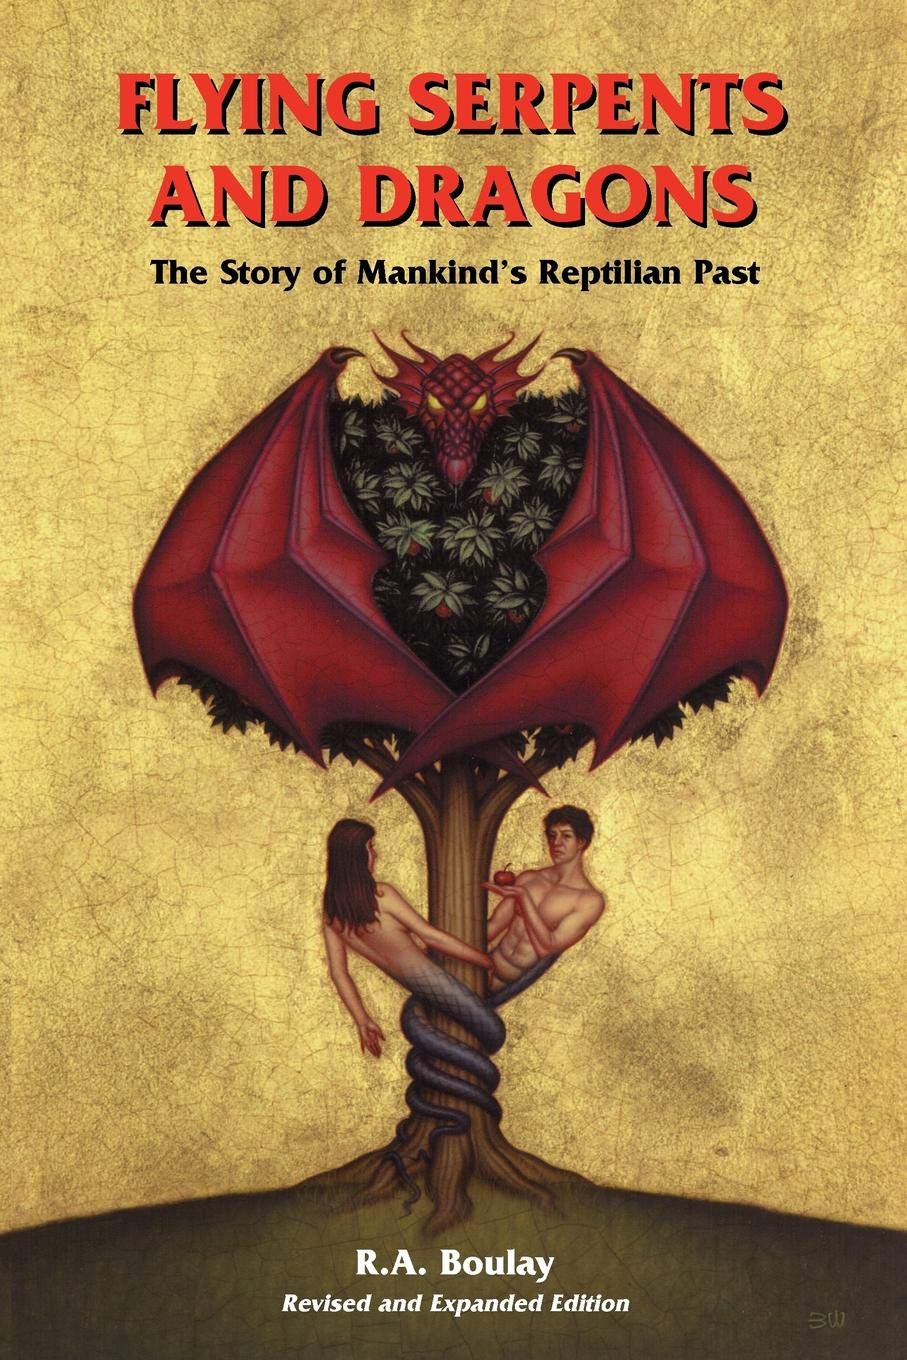 Flying Serpents and Dragons: The Story of Mankind's Reptilian Past pdf